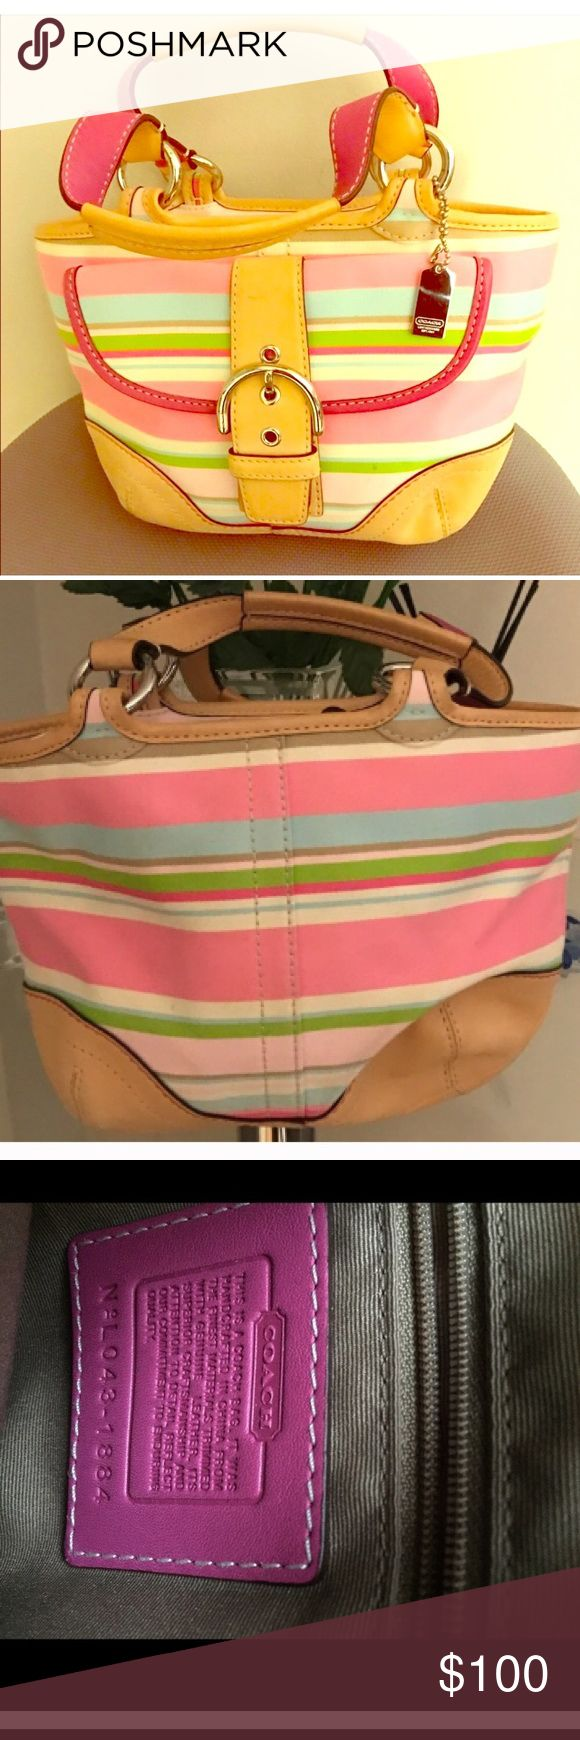 NWOT Coach purse NWOT coach medium sized bag. Beautiful spring/summer bag. Pink and multi color stripes, with leather detail and stripes. Inside split in to 2 part. So much room without looking bulky. 💯 authentic Coach Bags